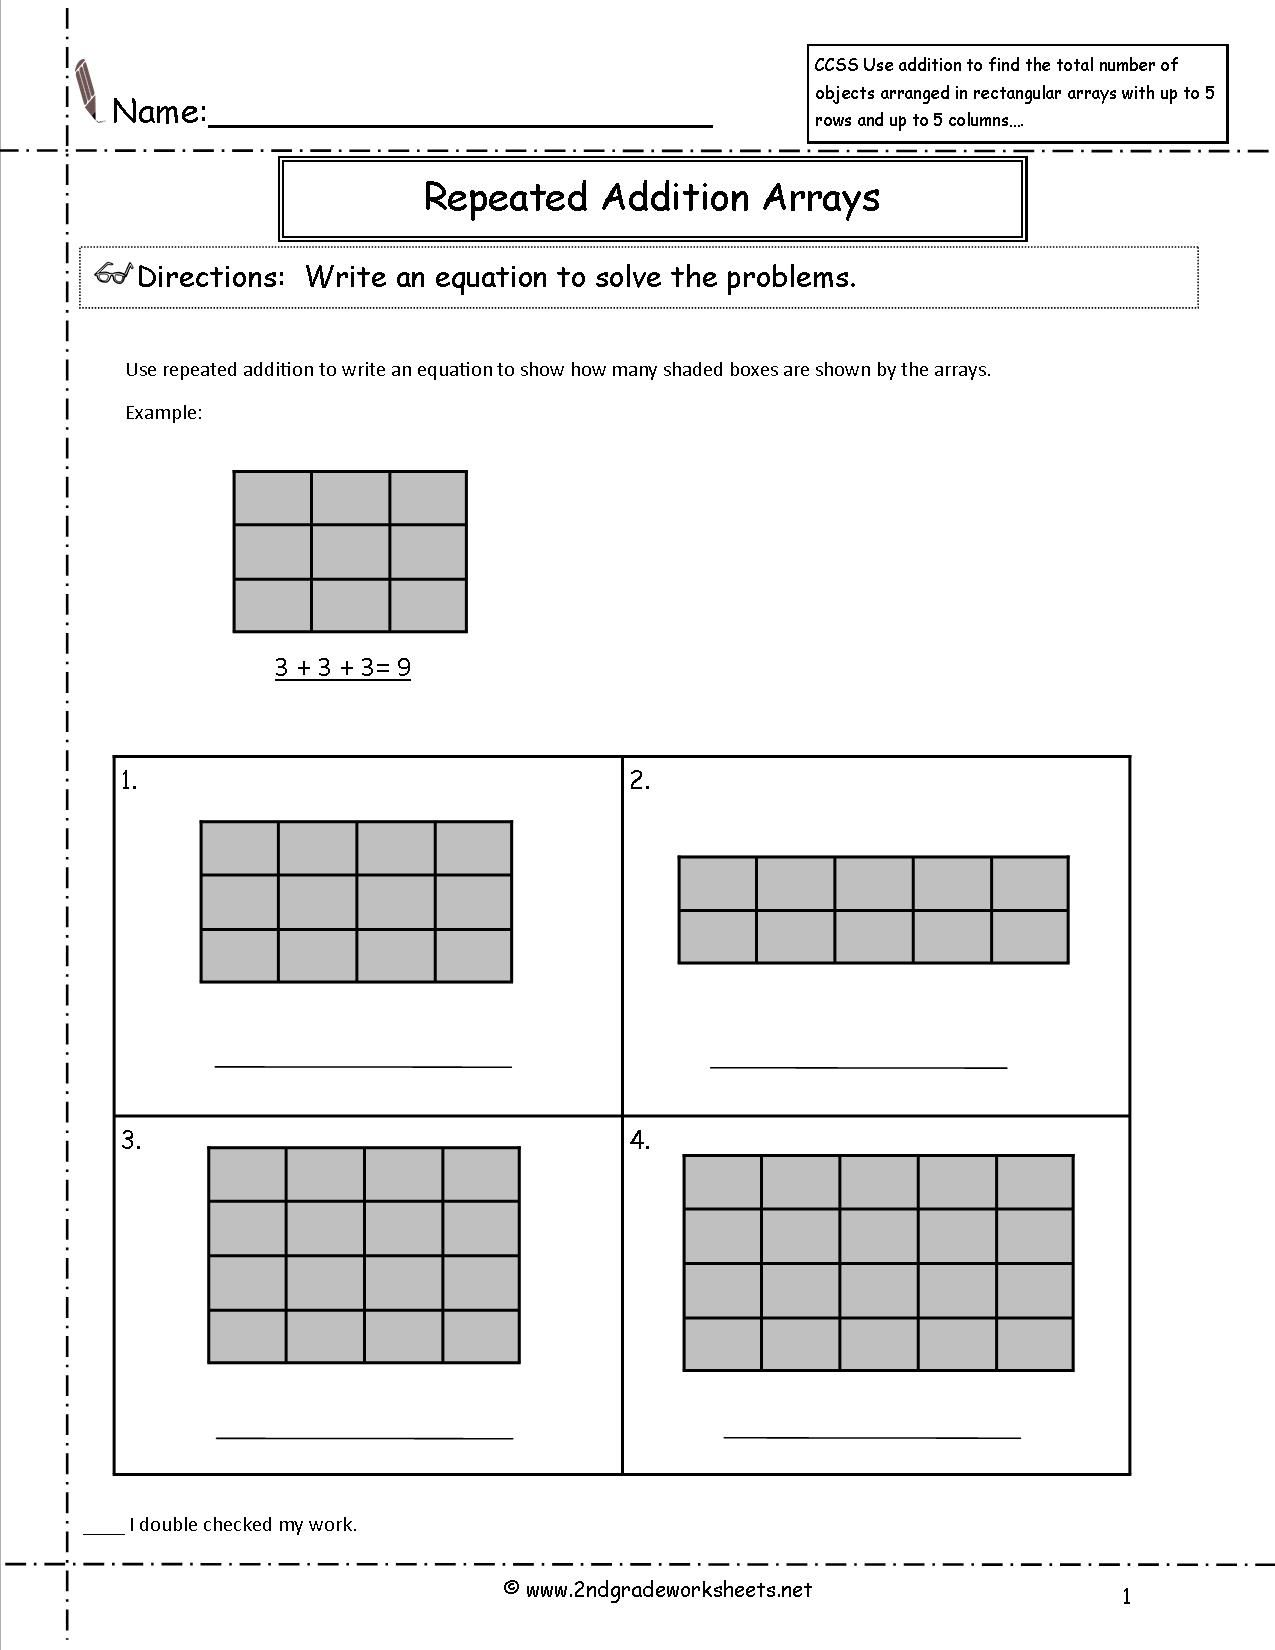 Free Array Worksheets Pictures - 2nd Grade Free Preschool Worksheet - KD  WORKSHEET   Array worksheets [ 1650 x 1275 Pixel ]